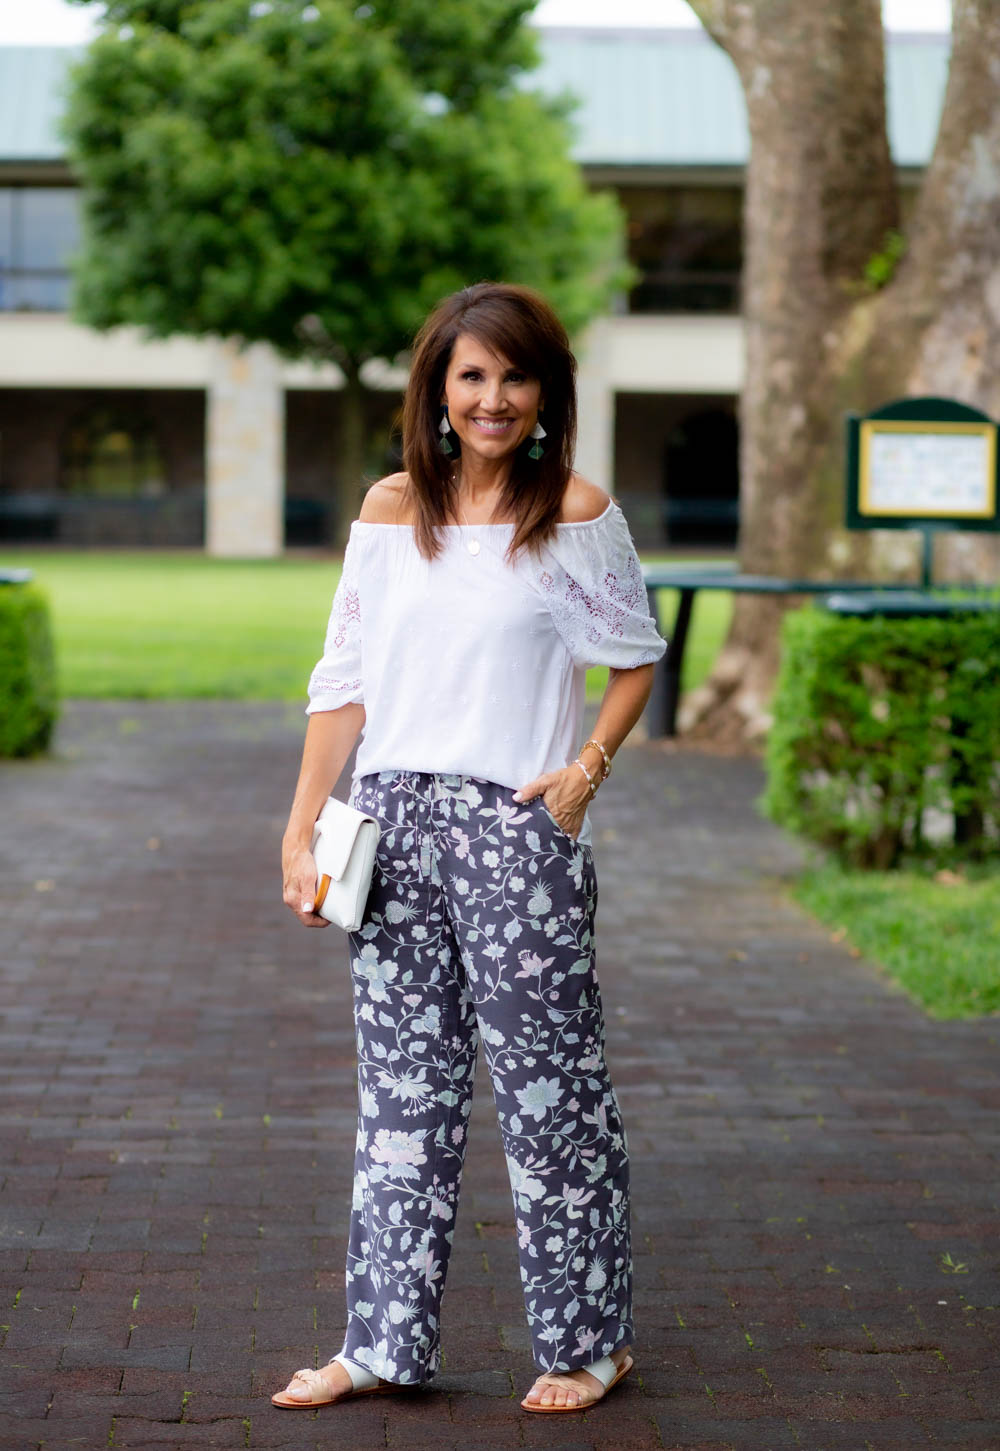 Summer Floral Pants from LOFT